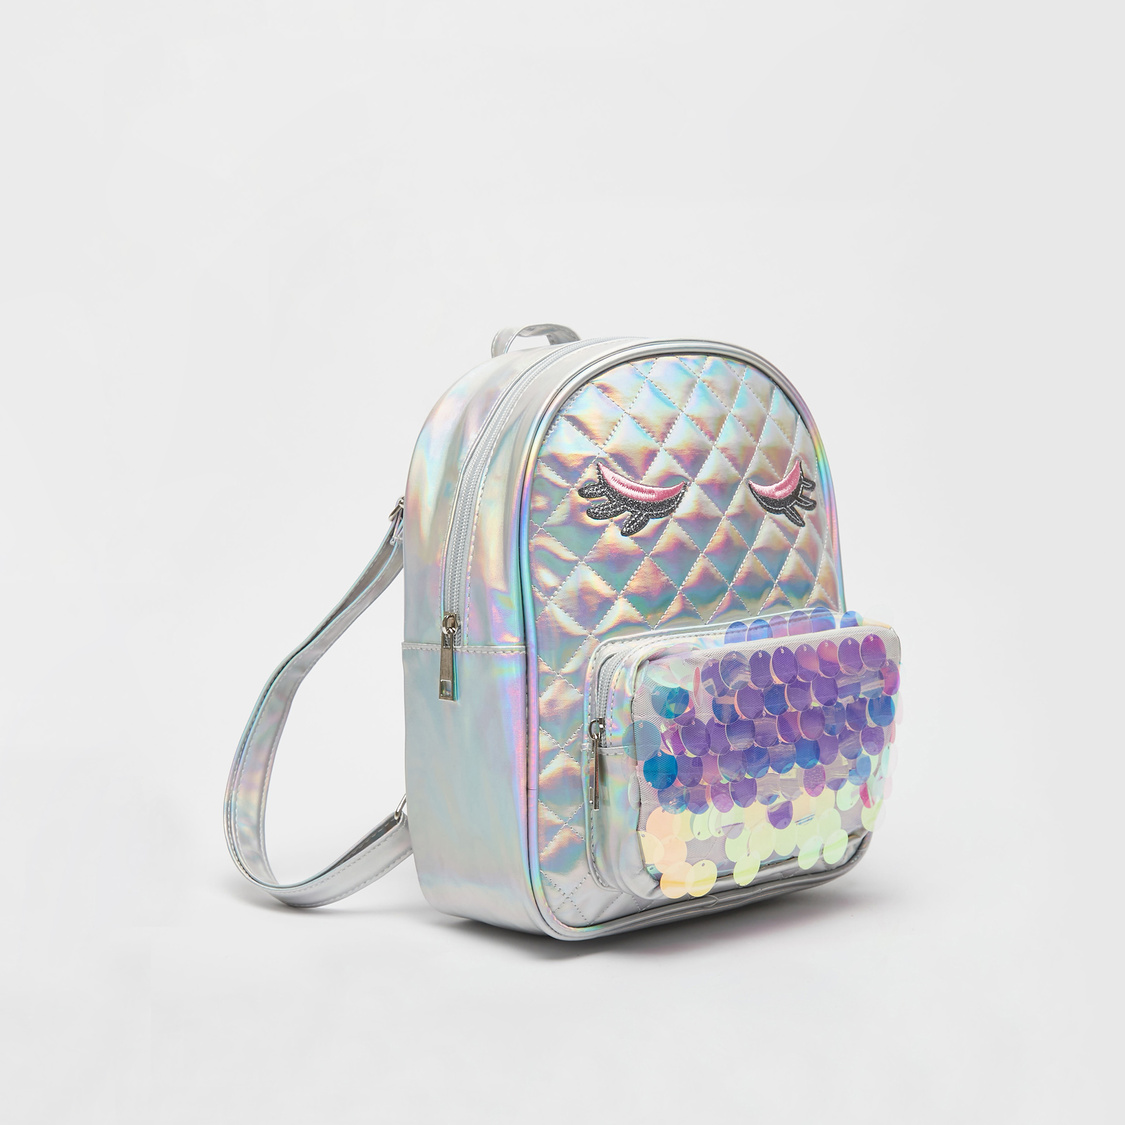 Holographic Quilted Backpack with Sequin Embellished Pocket